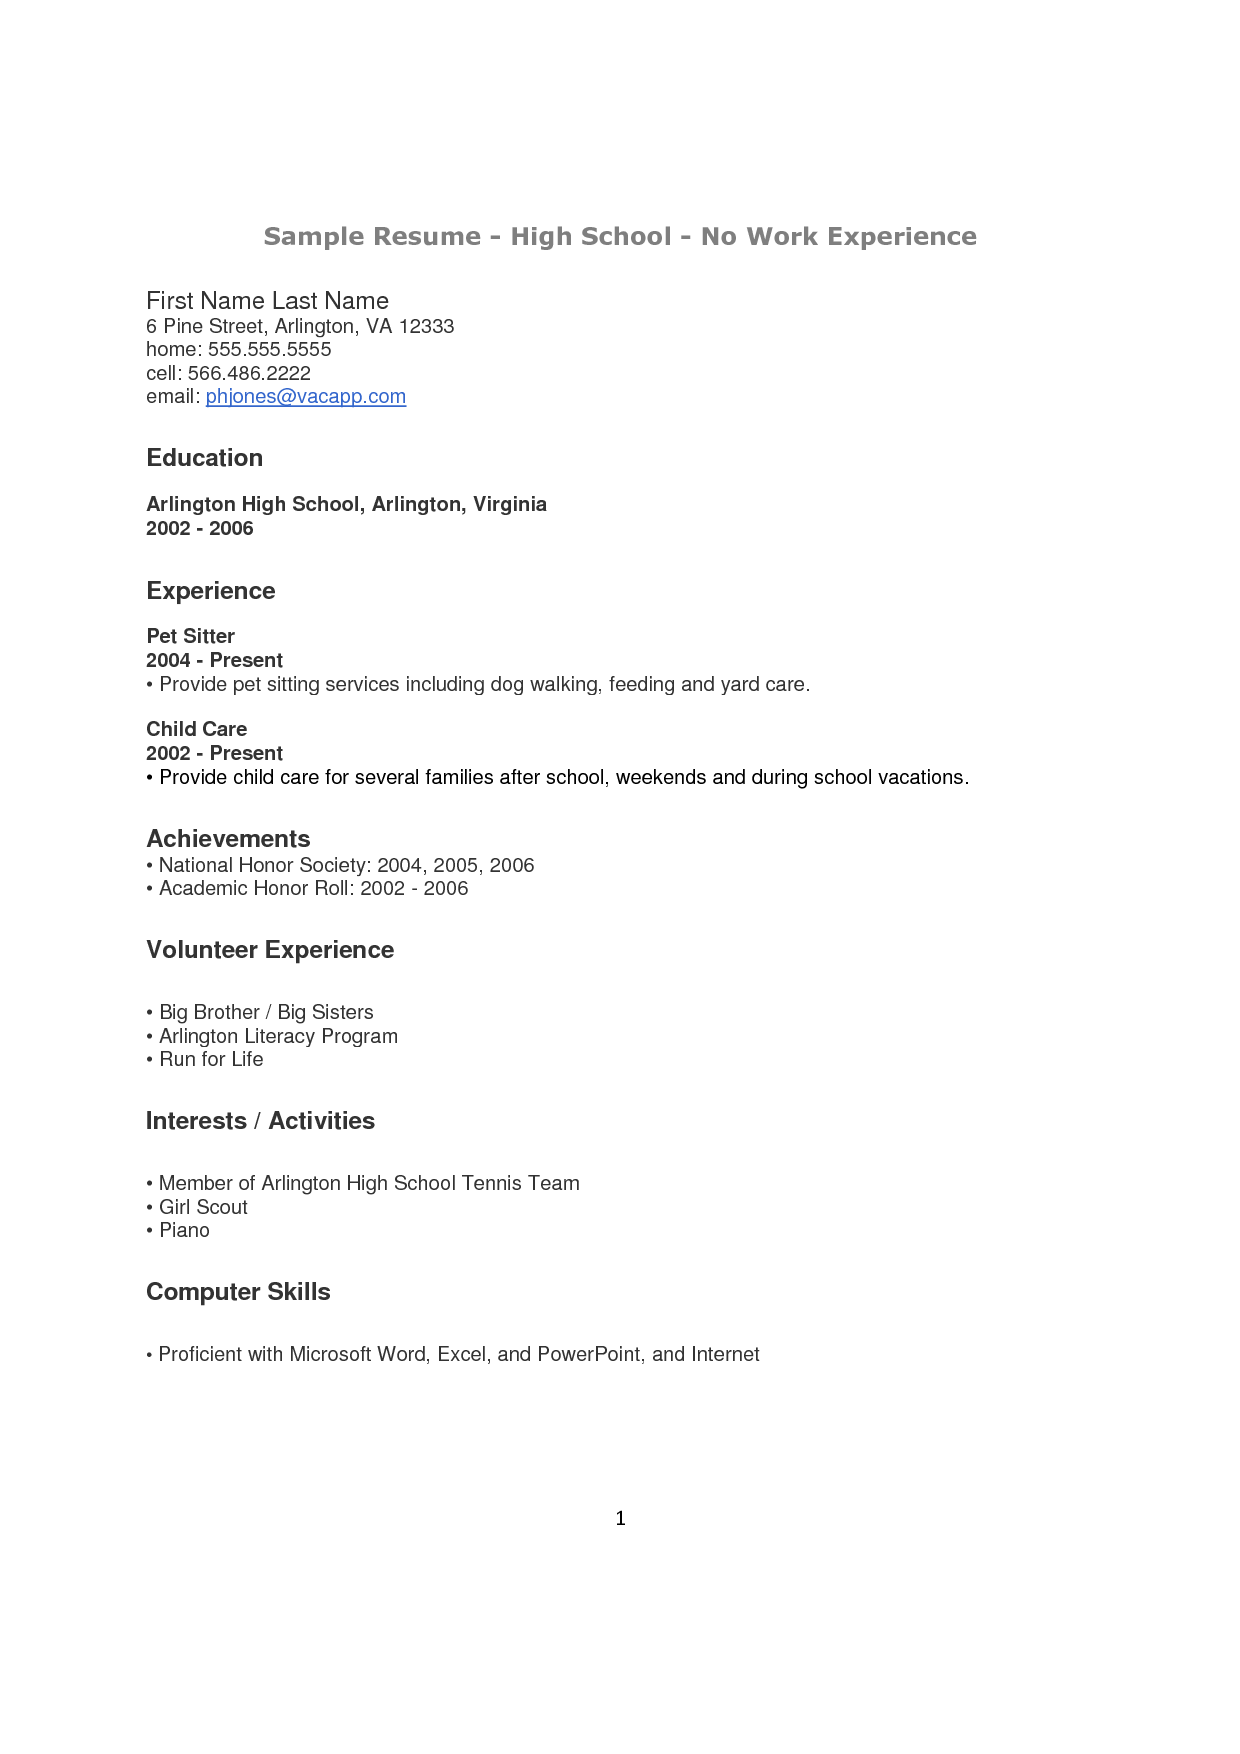 Resume Templates No Work Experience ResumeTemplates